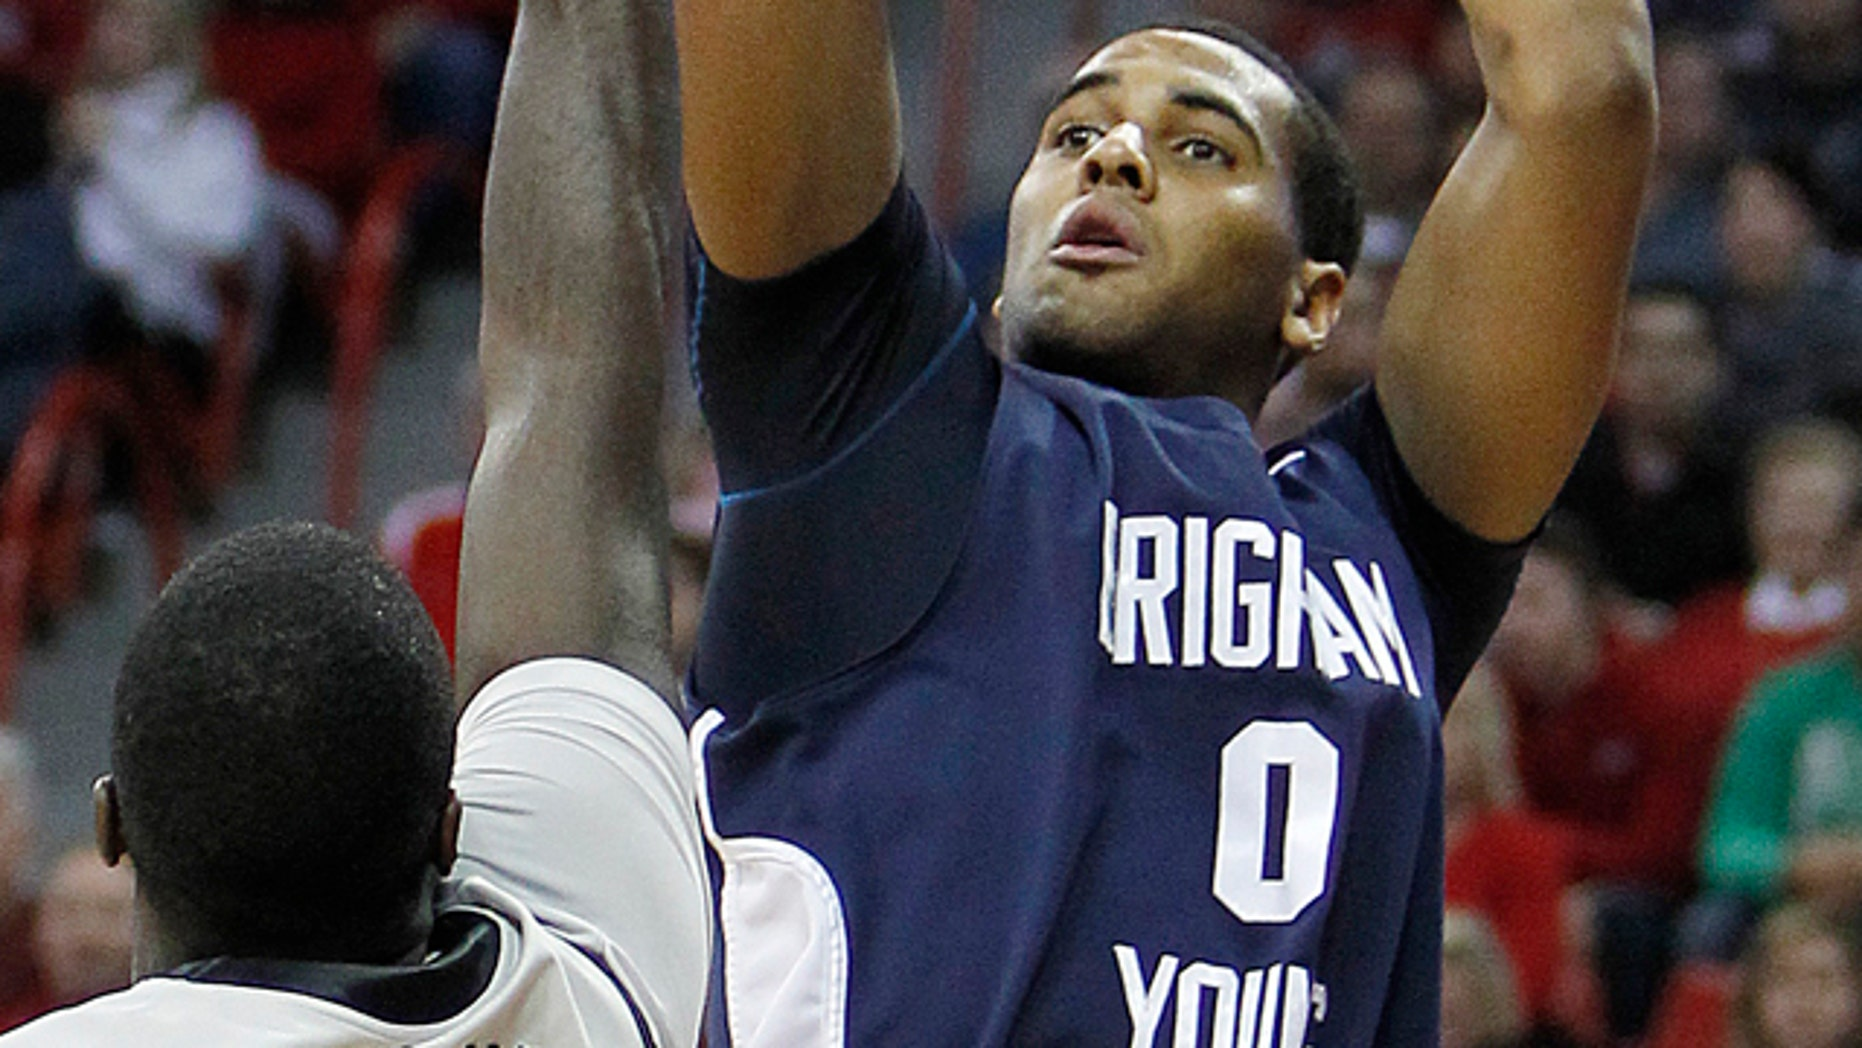 Jan. 5: BYU's Brandon Davies shoots over UNLV's Brice Massamba during an NCAA college basketball game in Las Vegas.